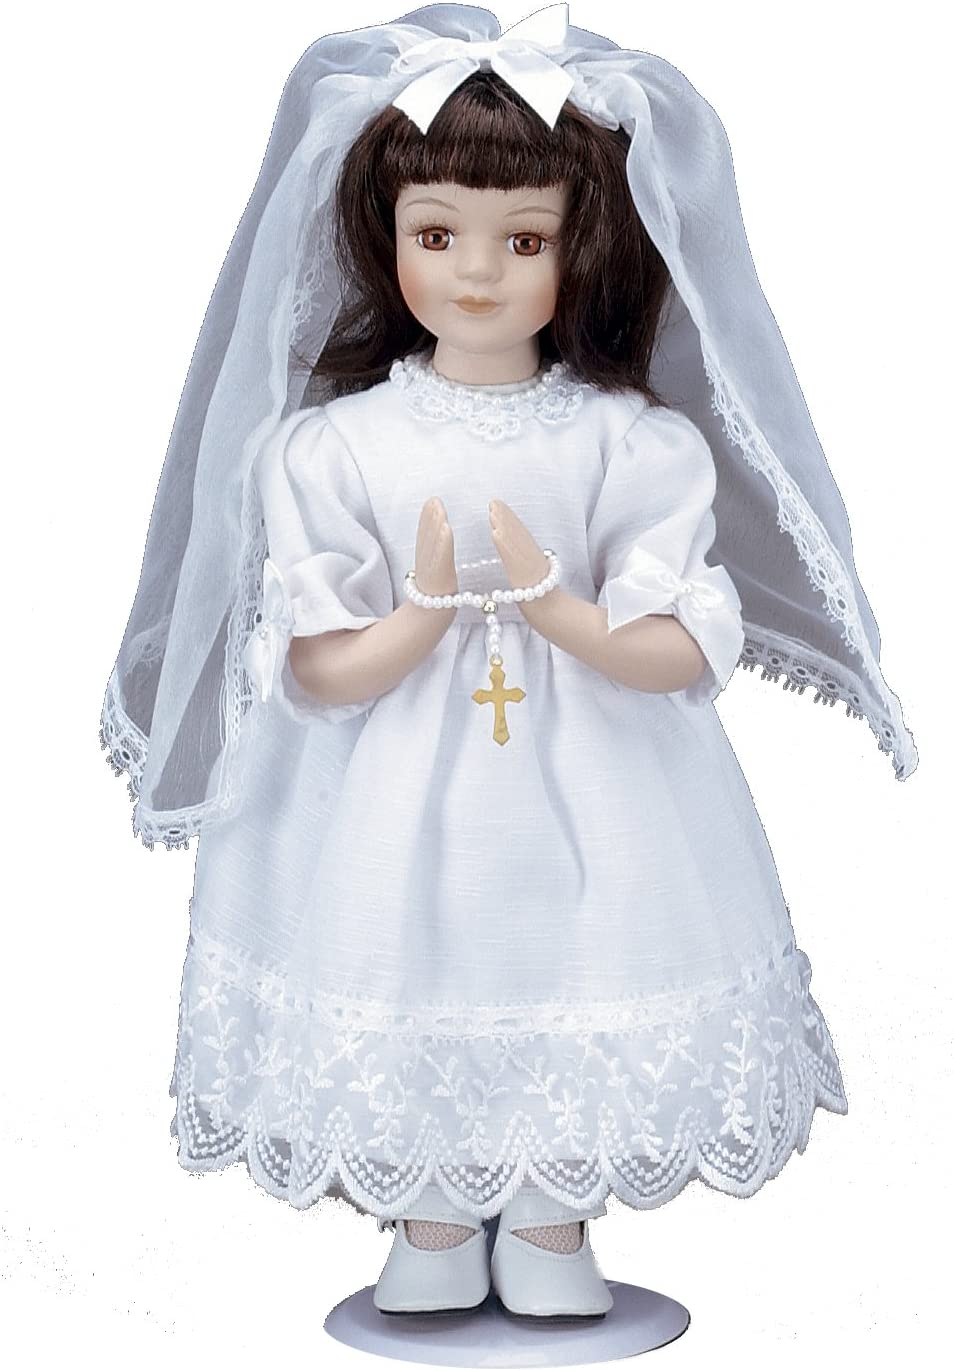 Roman Communion Gifts, Tall Porcelain Communion Doll, 12-Inch, Brunette